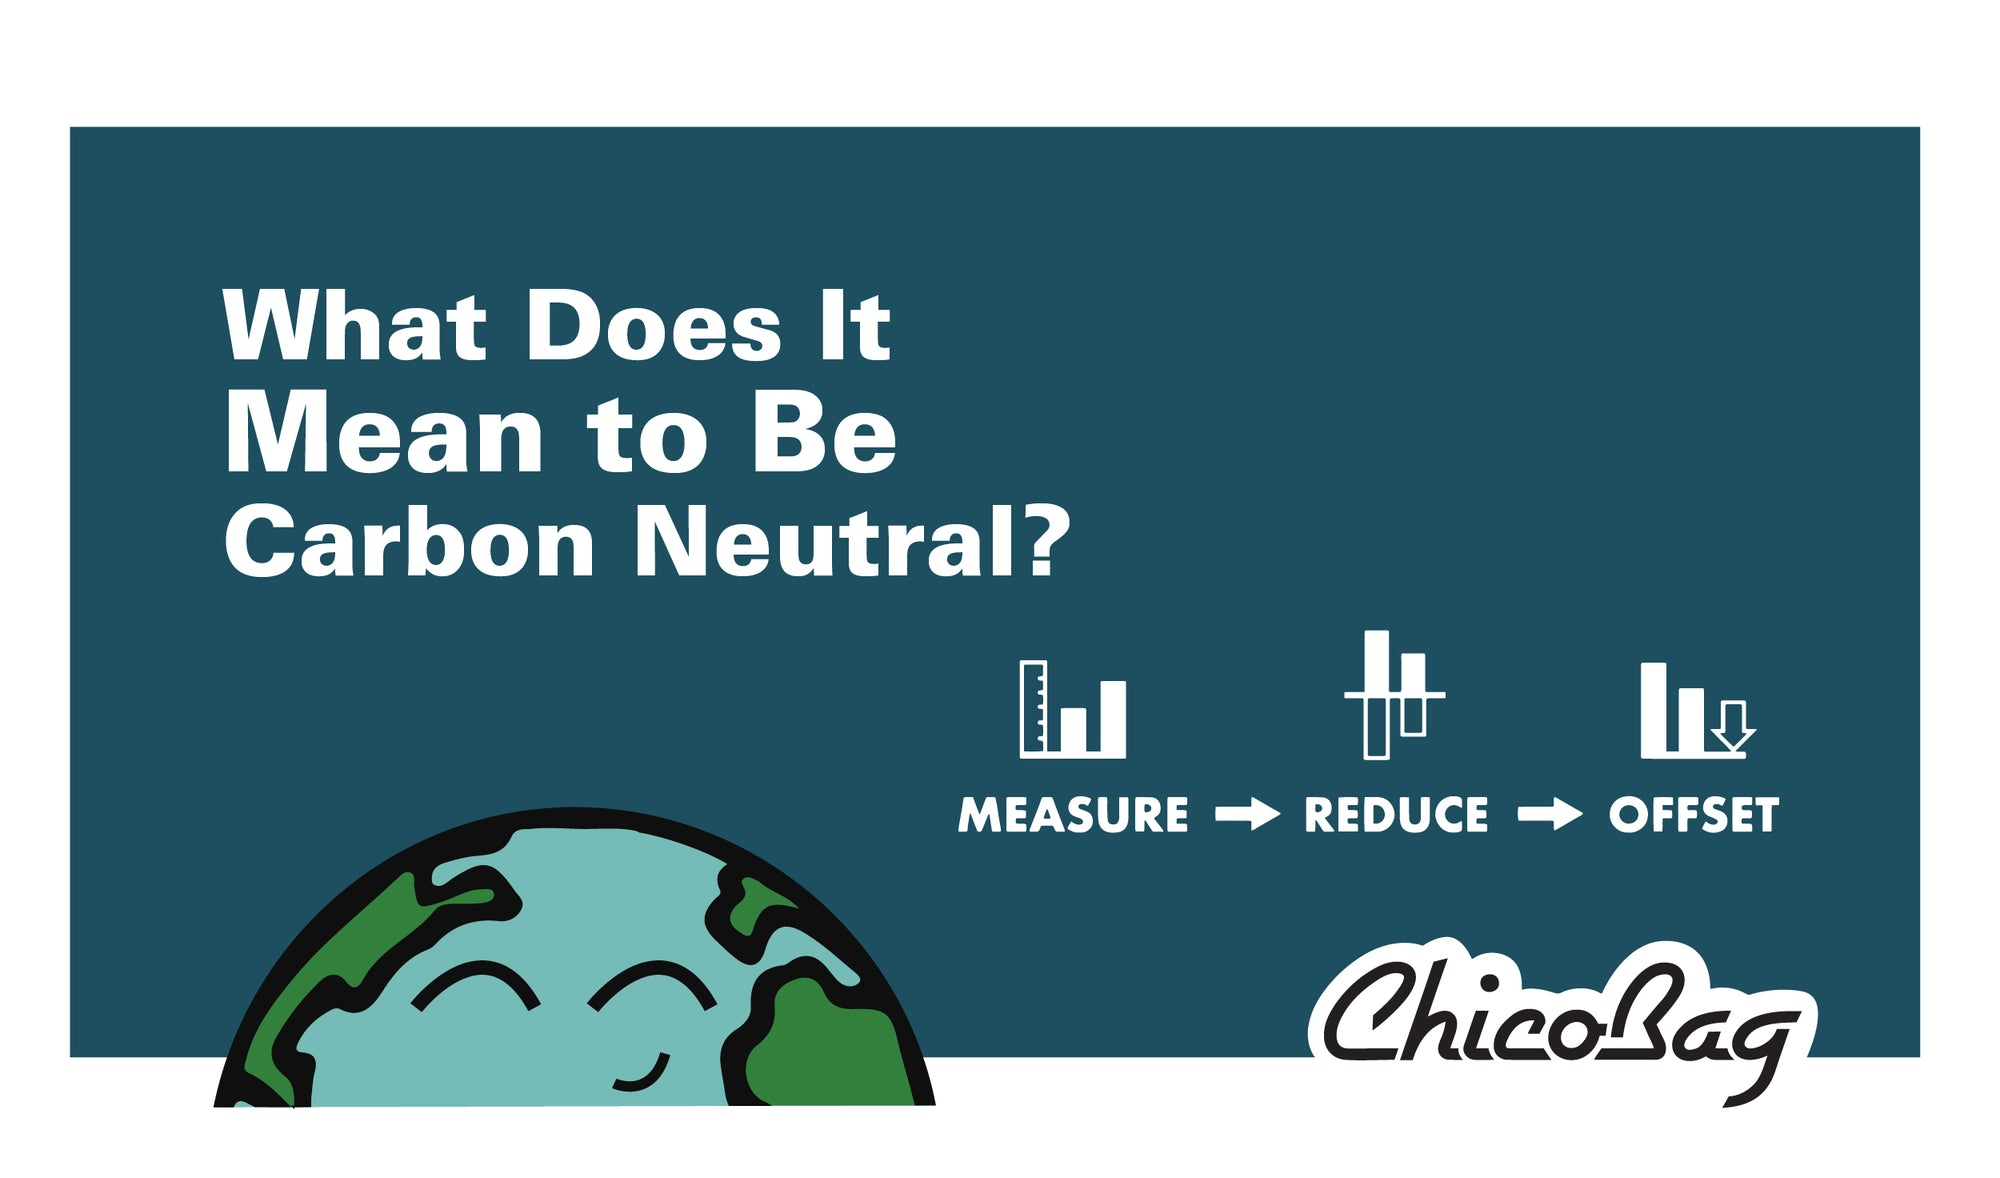 What Does It Mean to Be Carbon Neutral?